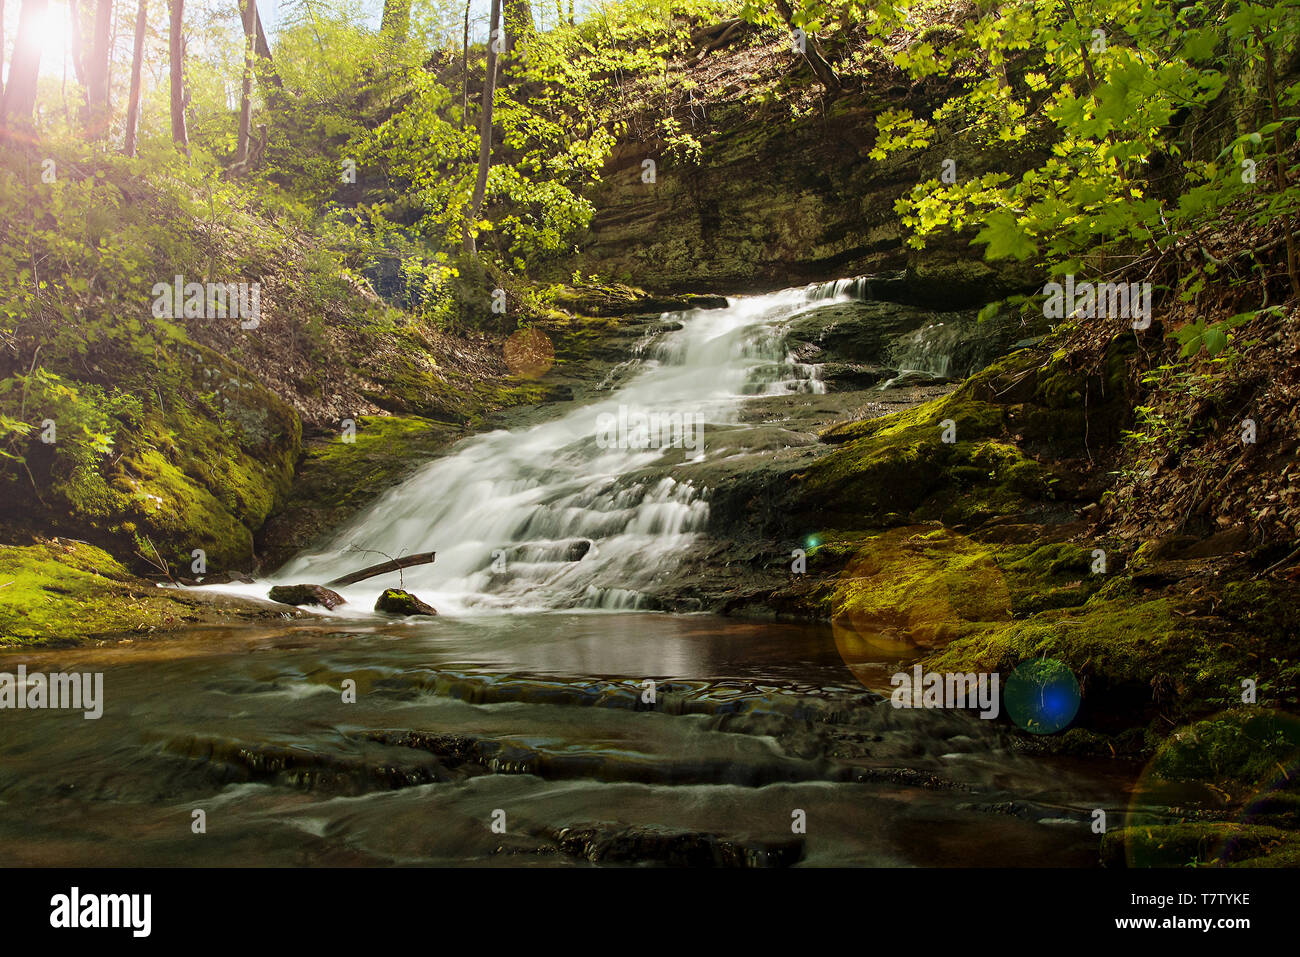 Cascade in the Park - Stock Image